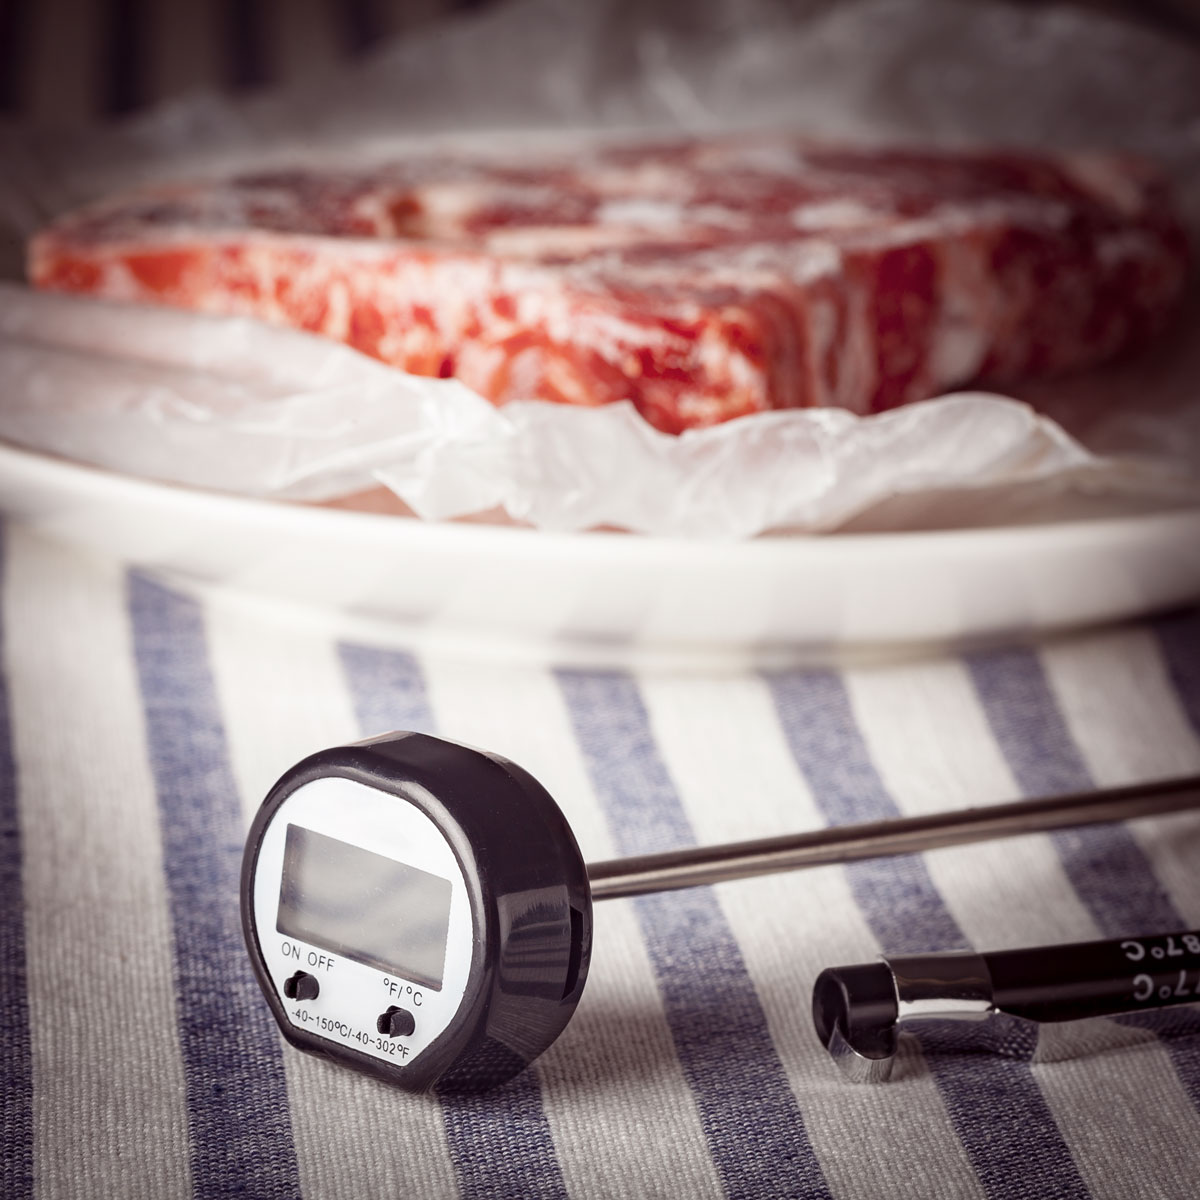 Digital Meat-Cooking Thermometer